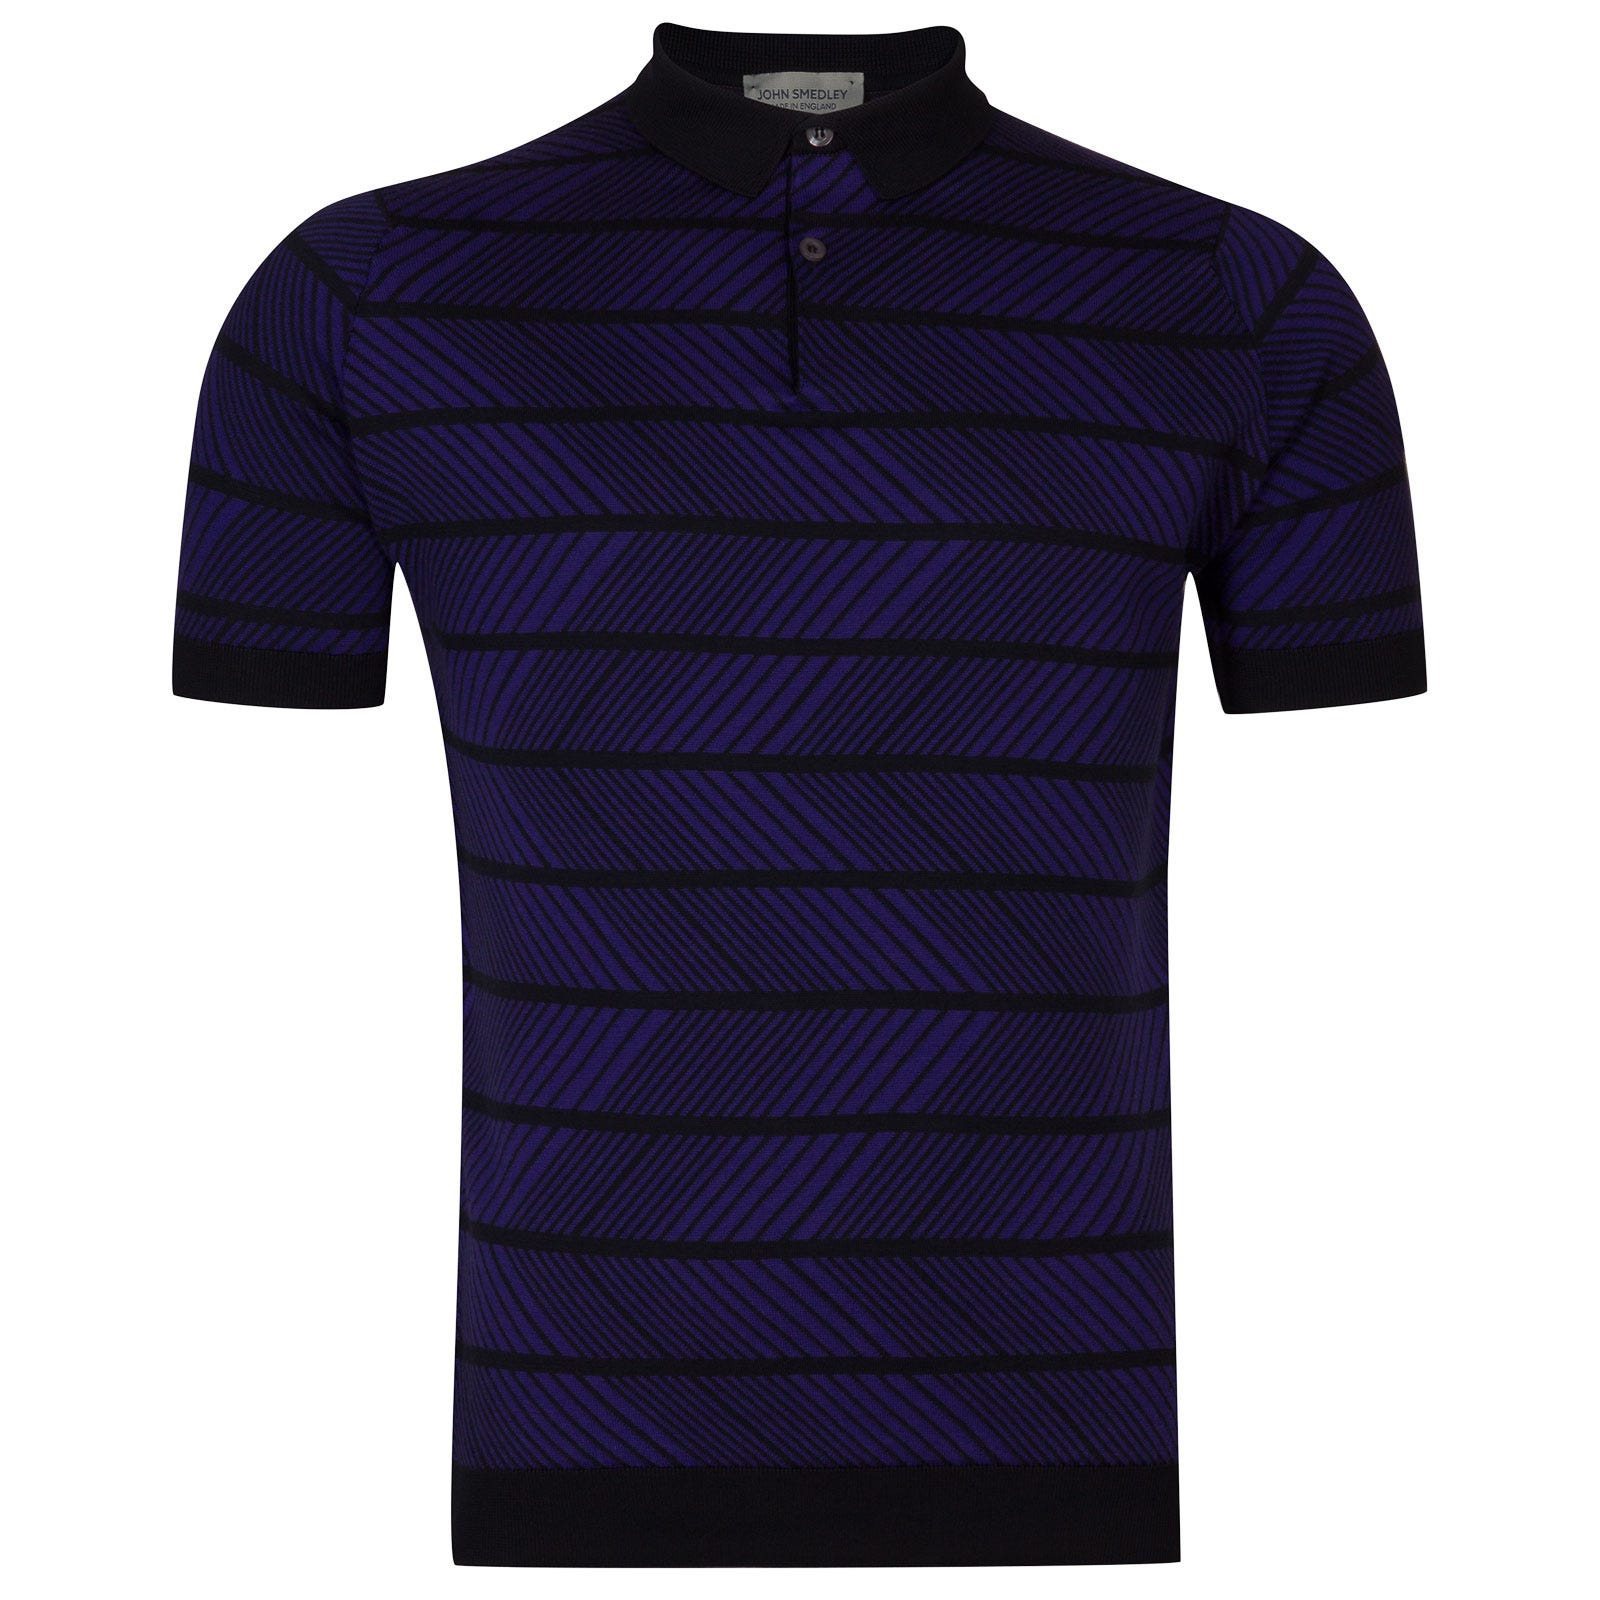 John Smedley Hermann in Navy/Electric Purple-S